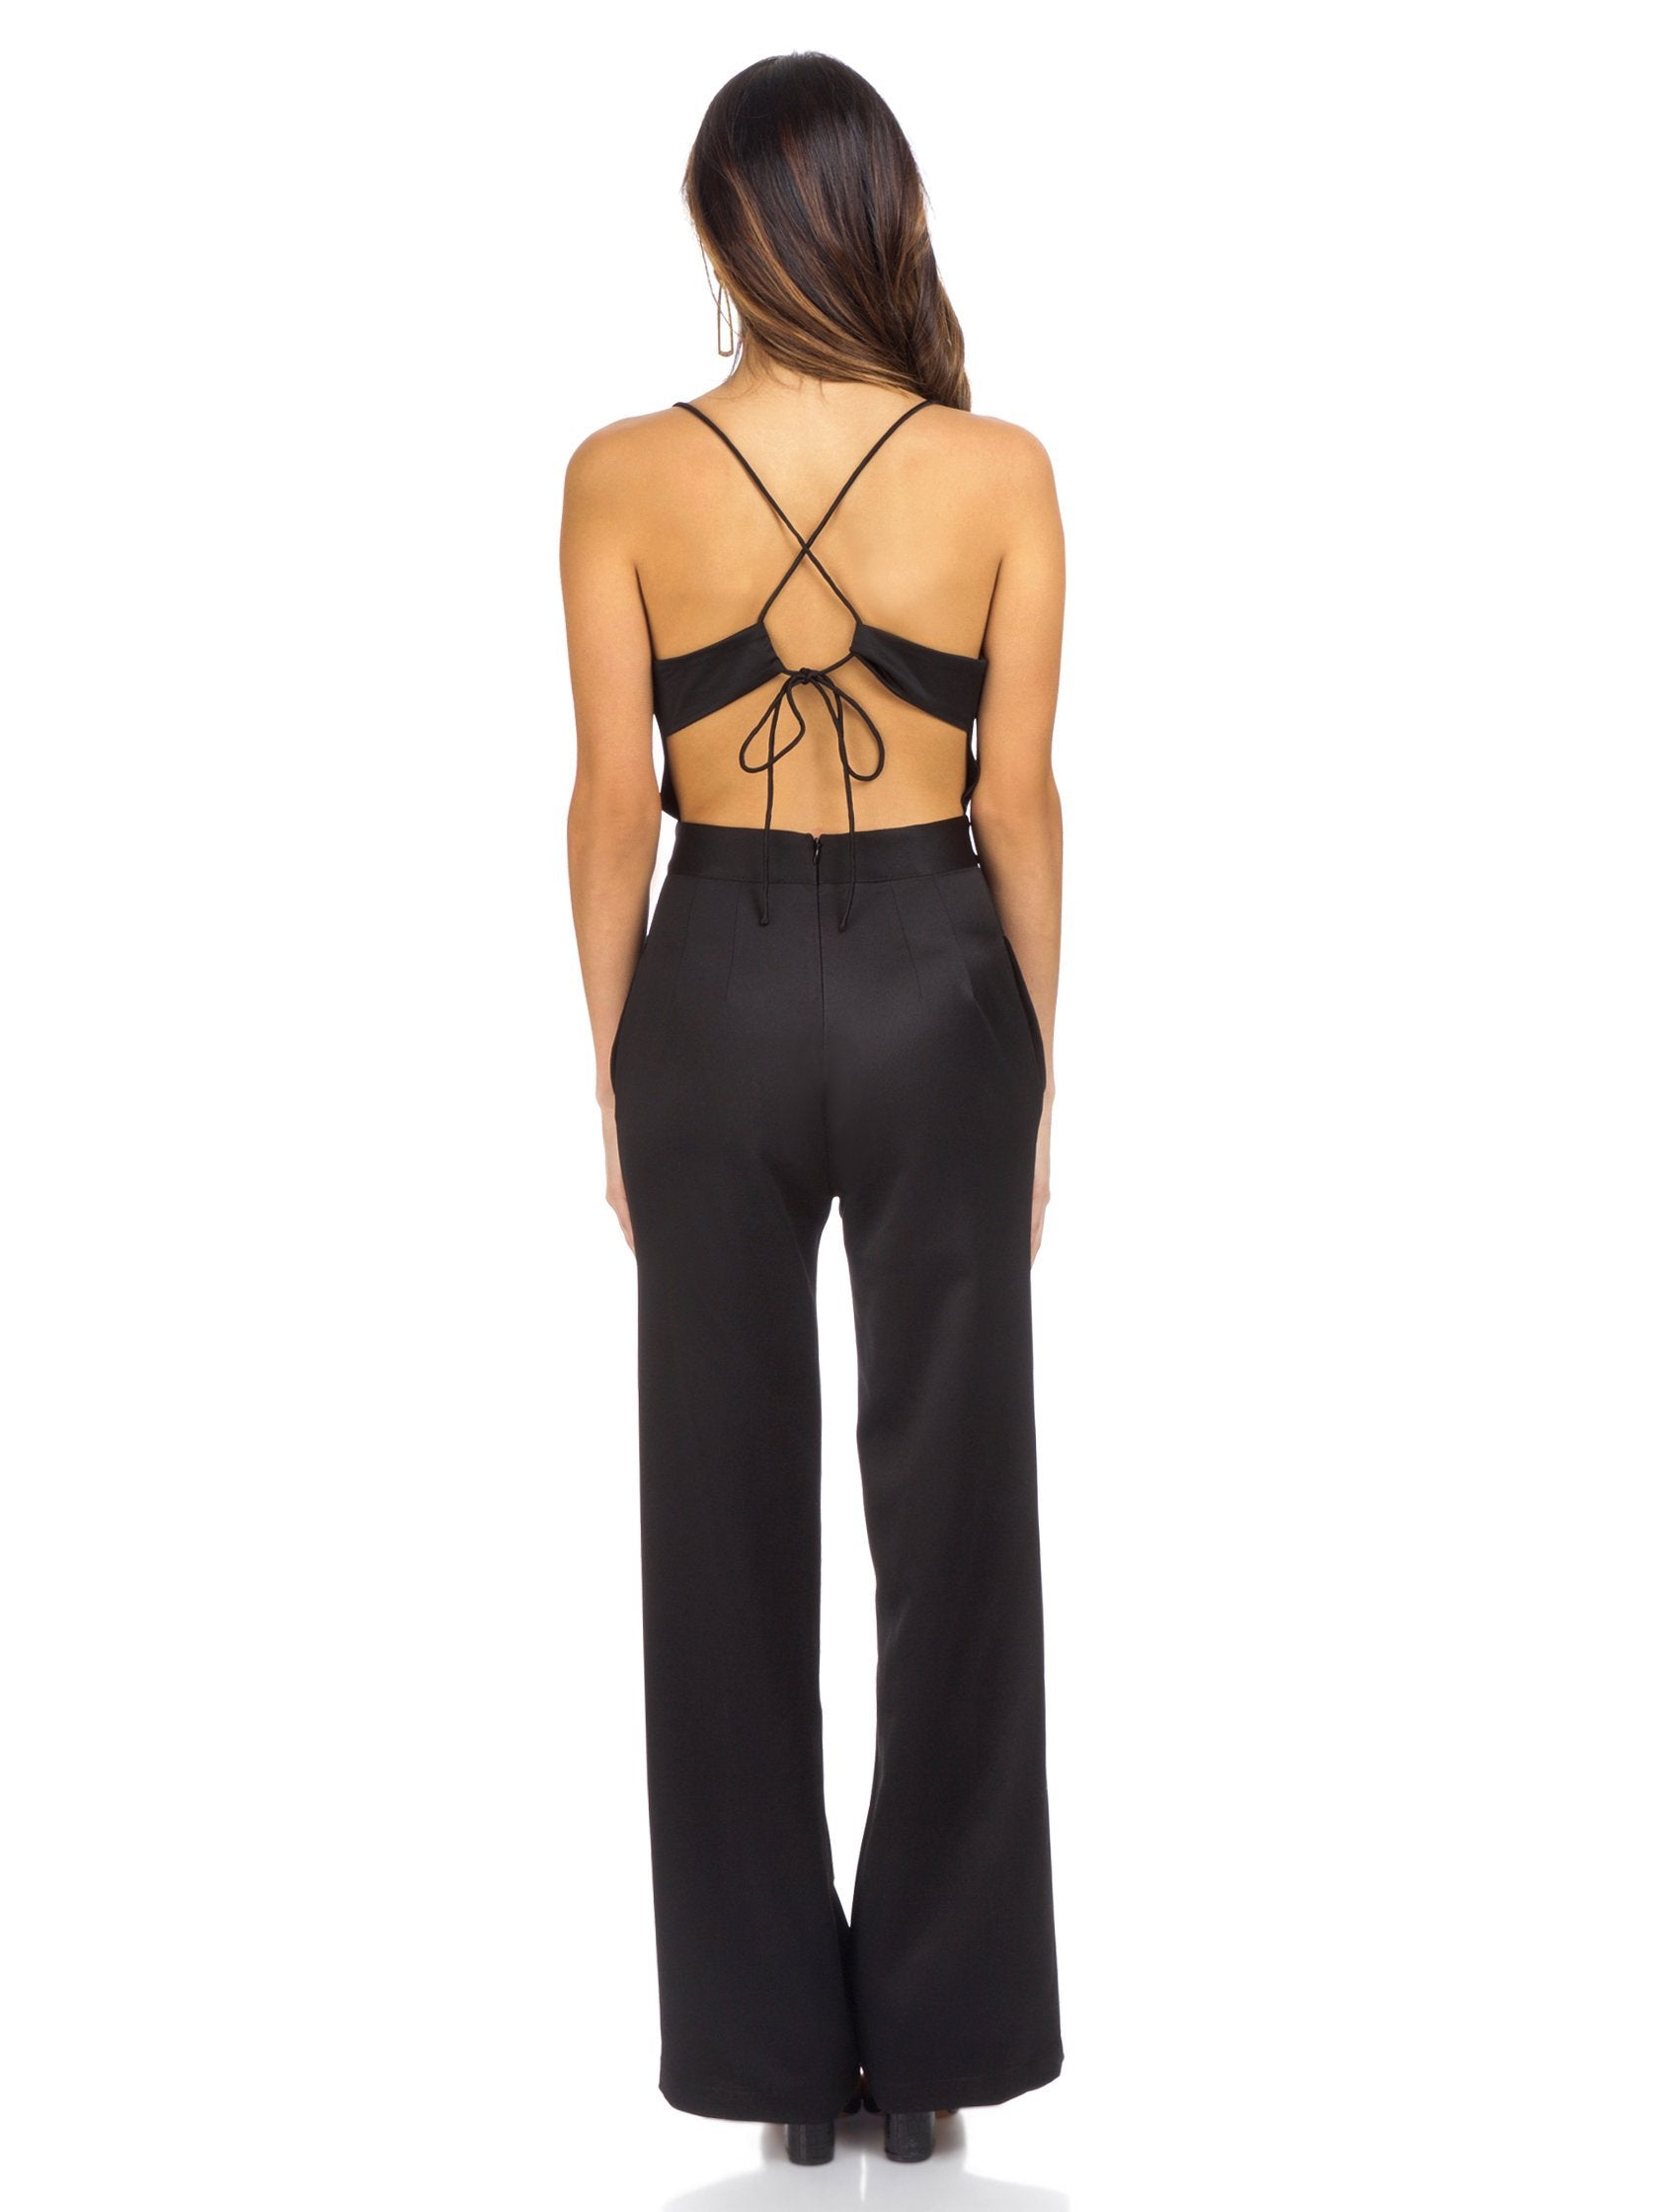 Women wearing a jumpsuit rental from NBD called Diem Jumpsuit